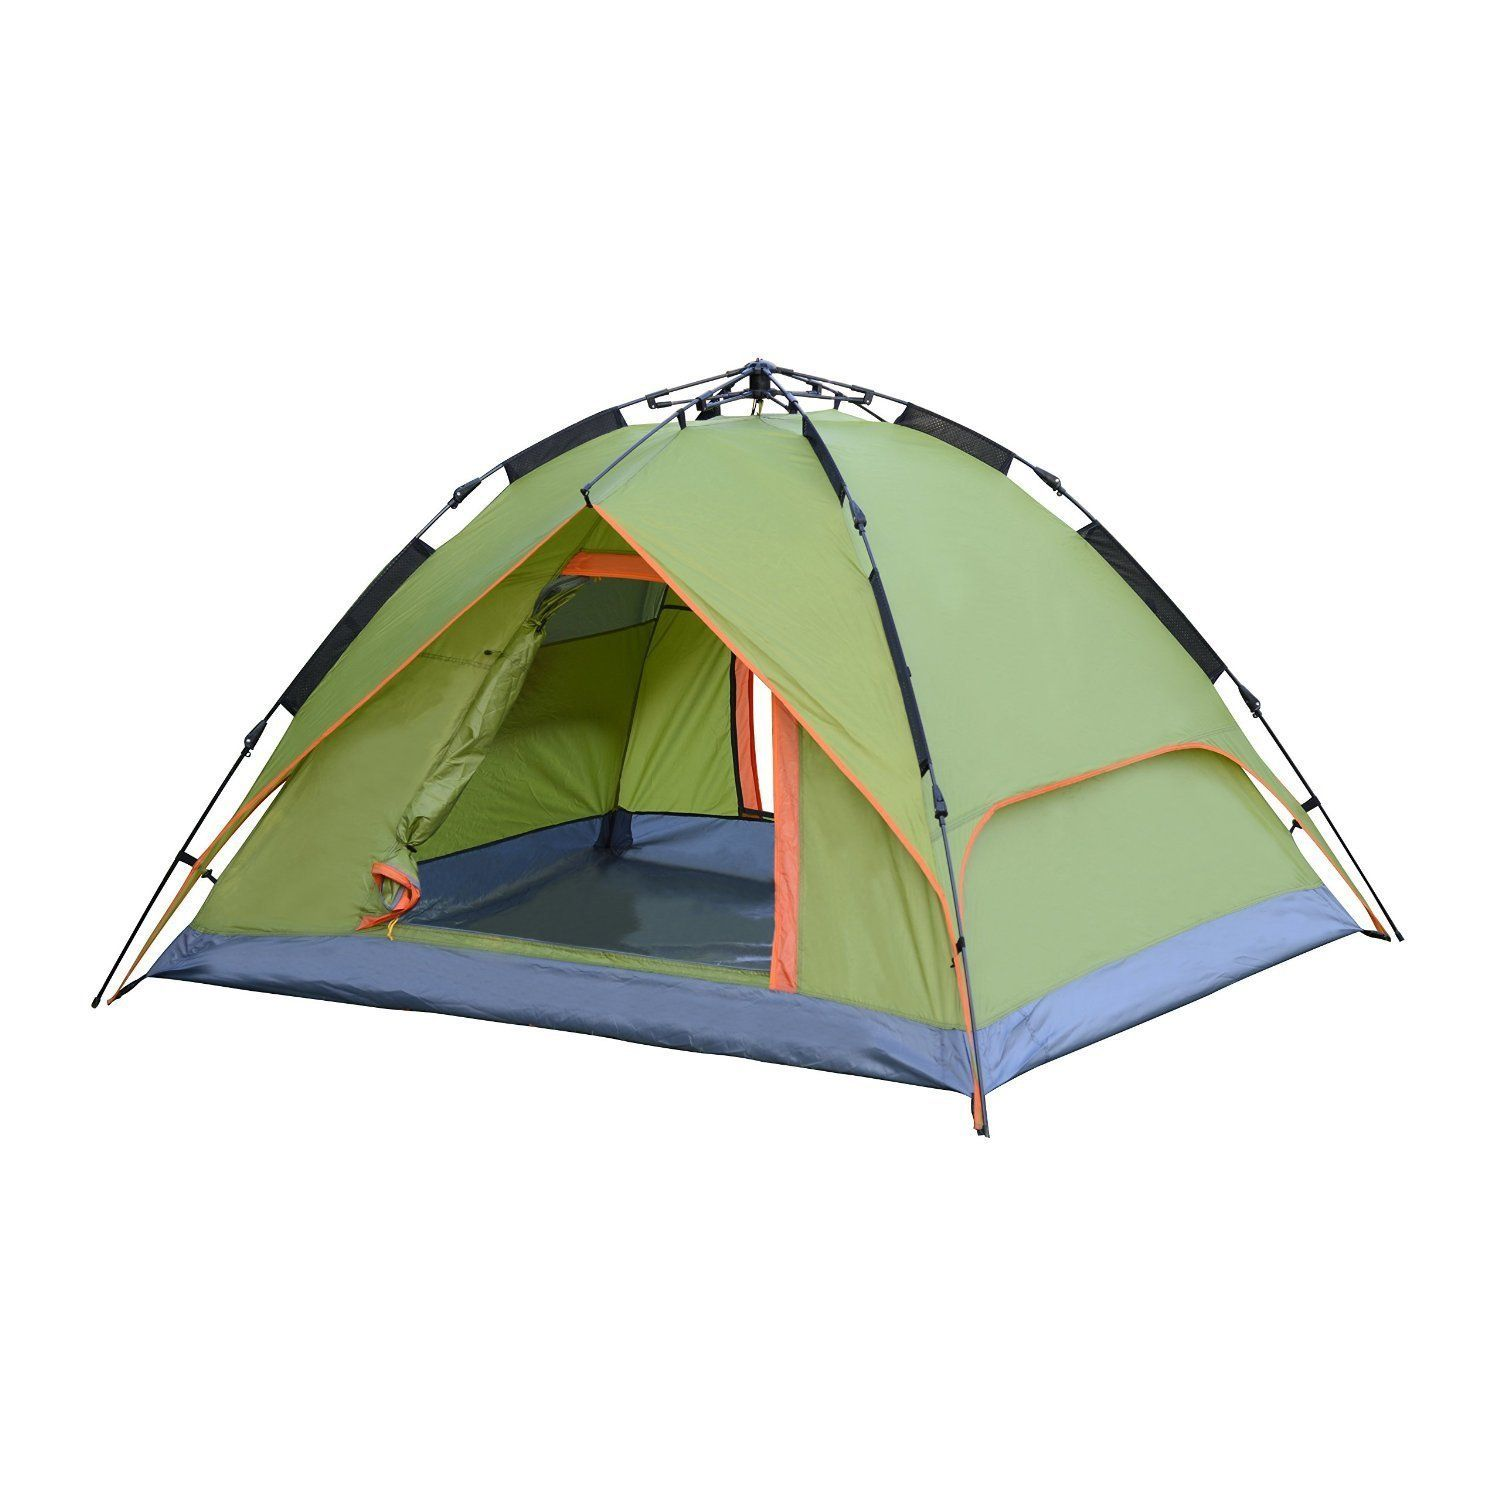 Amagg 3 Person Backpacking Tent with Carry Bag Easy Set Up Waterproof  sc 1 st  Pinterest & Amagg 3 Person Backpacking Tent with Carry Bag Easy Set Up ...